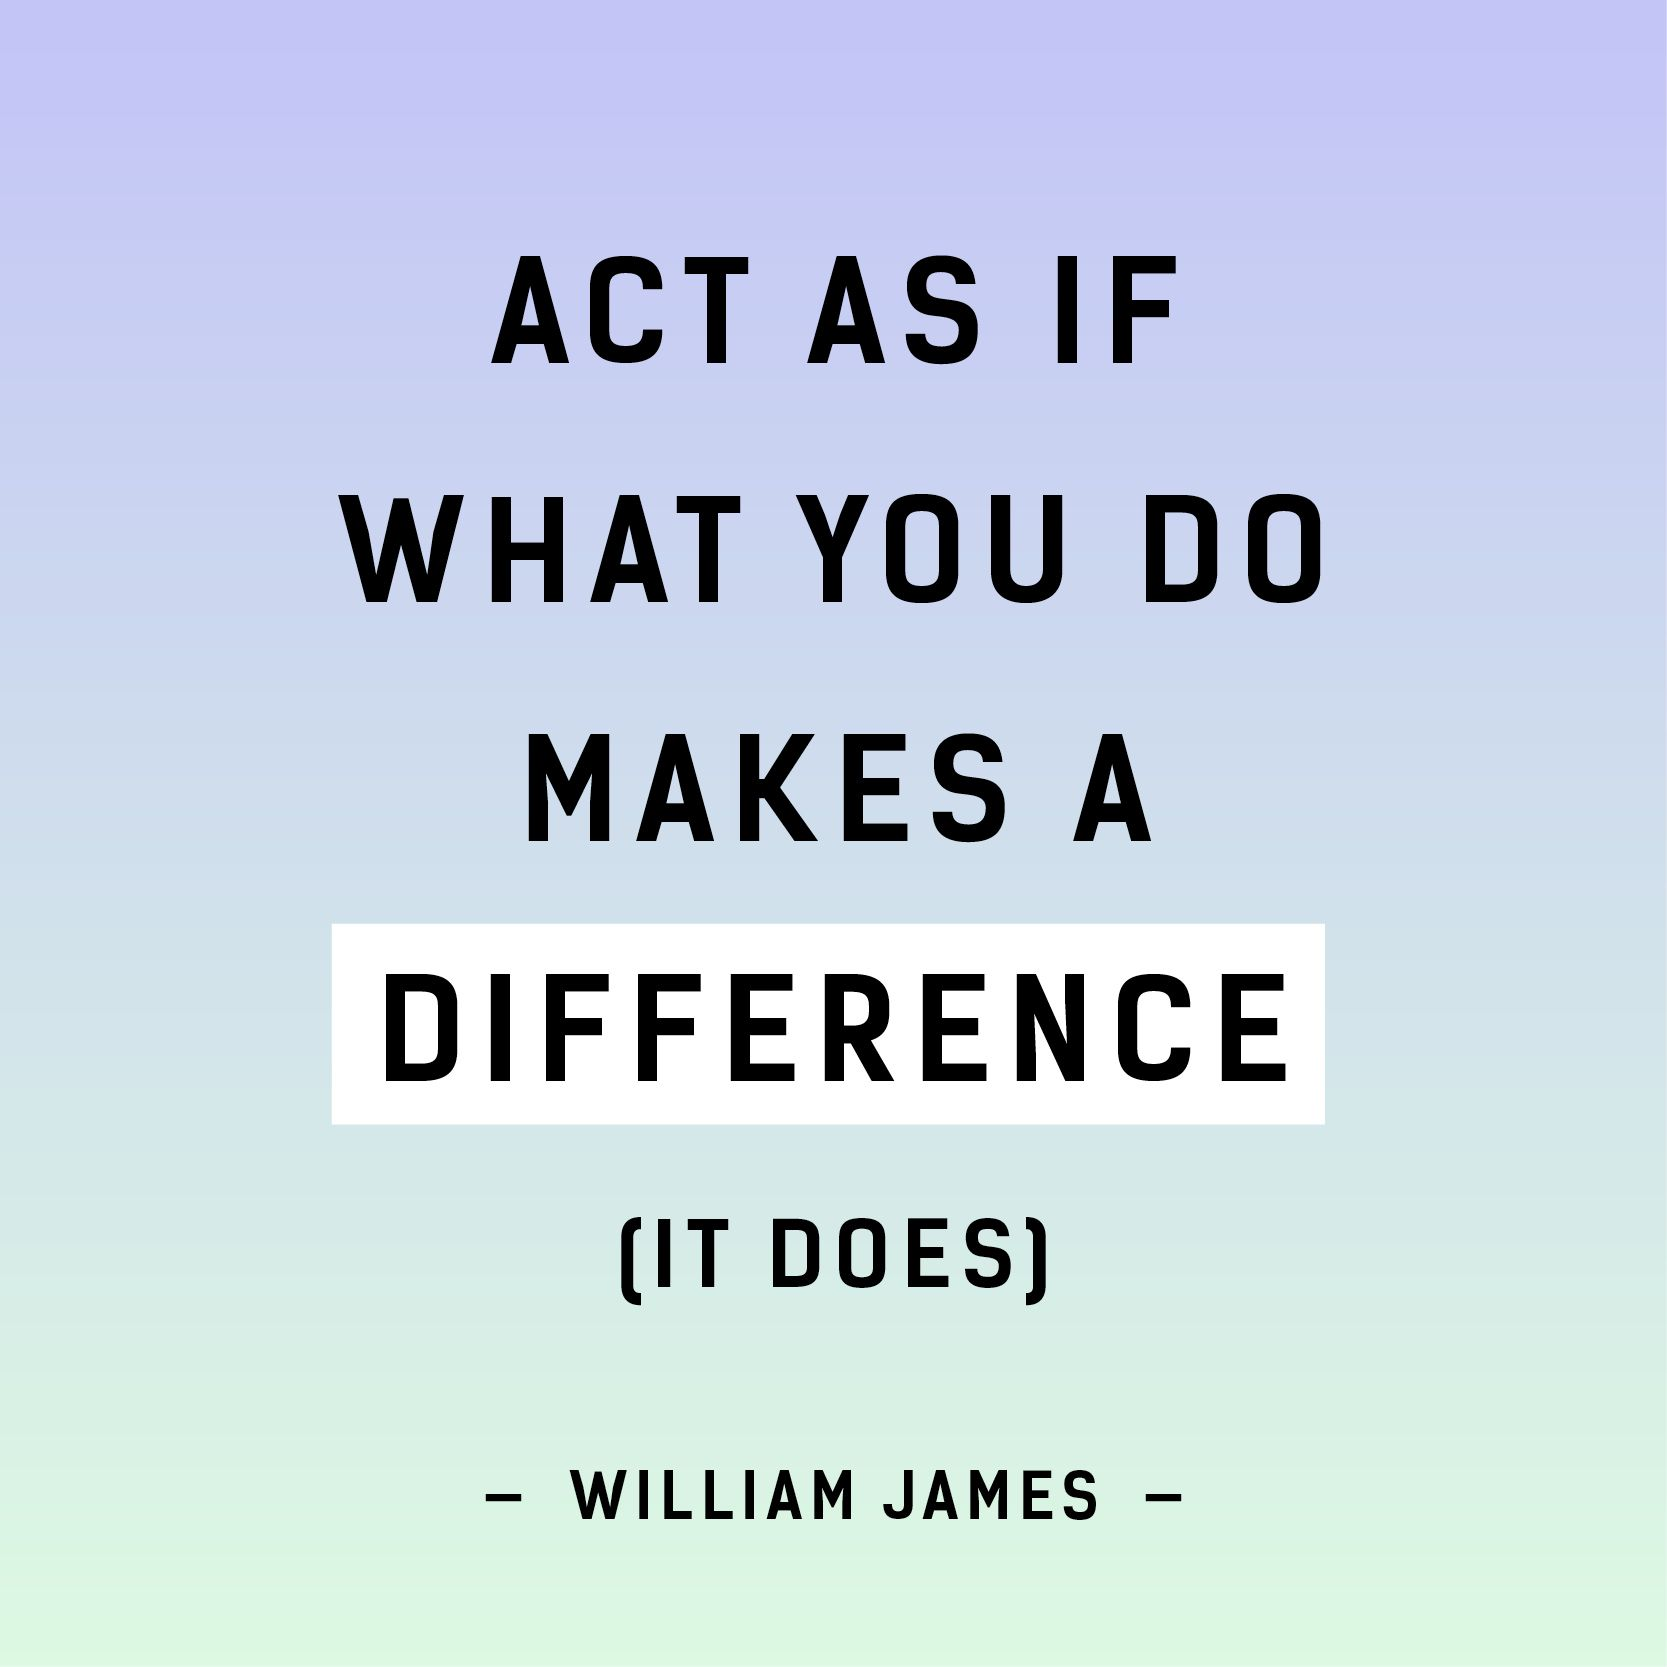 Love Finds You Quote: Act As If What You Do Makes A Difference (It Does